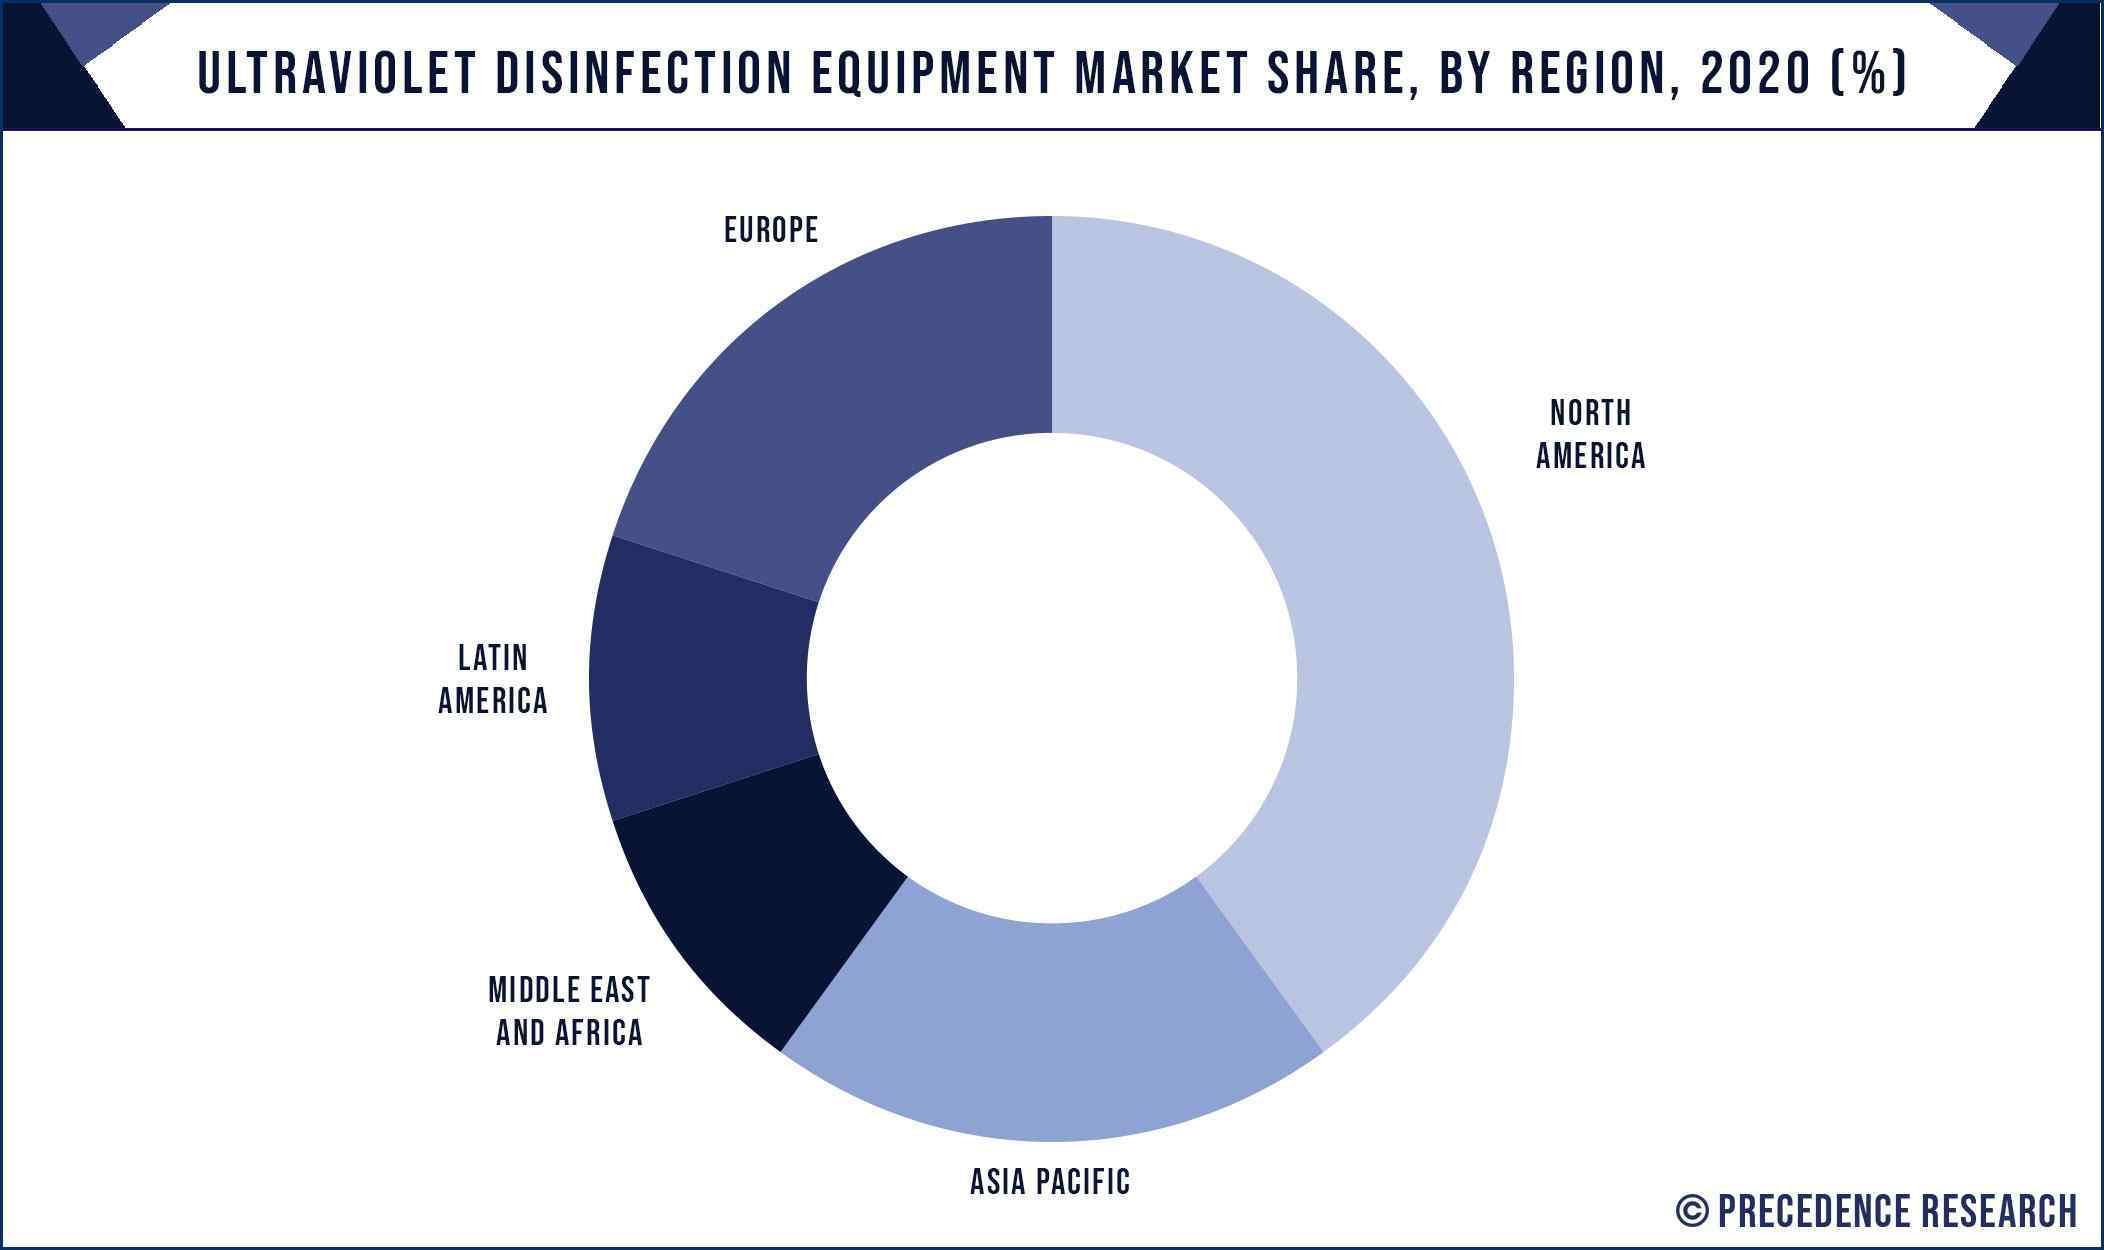 Ultraviolet Disinfection Equipment Market Share, By Region, 2020 (%)